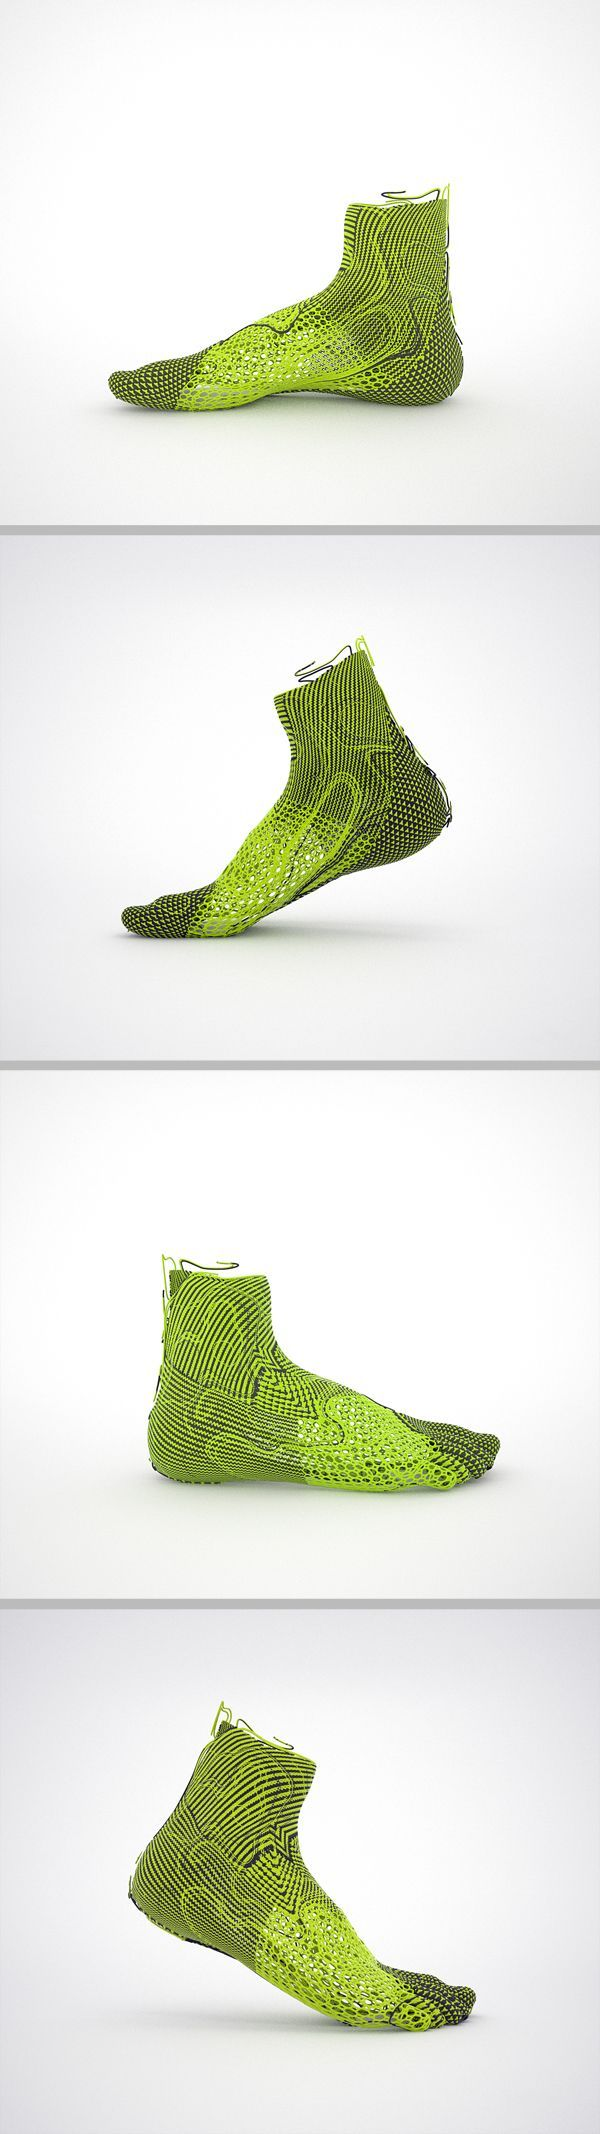 Nike Flyknit 2012 by deskriptiv, via Behance